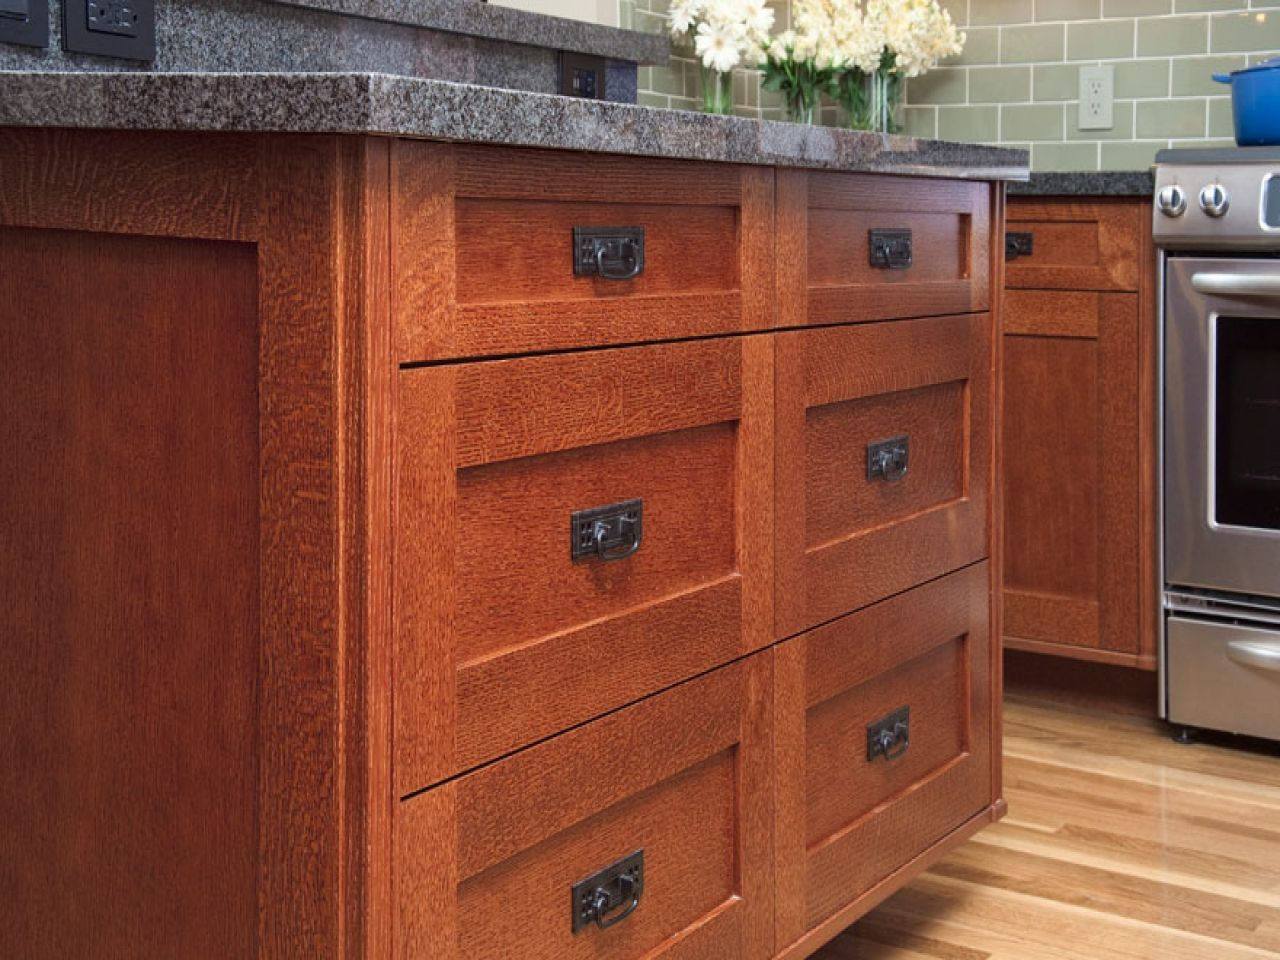 Oak Shaker Kitchen Cabinets Shaker Style Kitchen Cabinets Shaker Style Kitchens Types Of Kitchen Cabinets